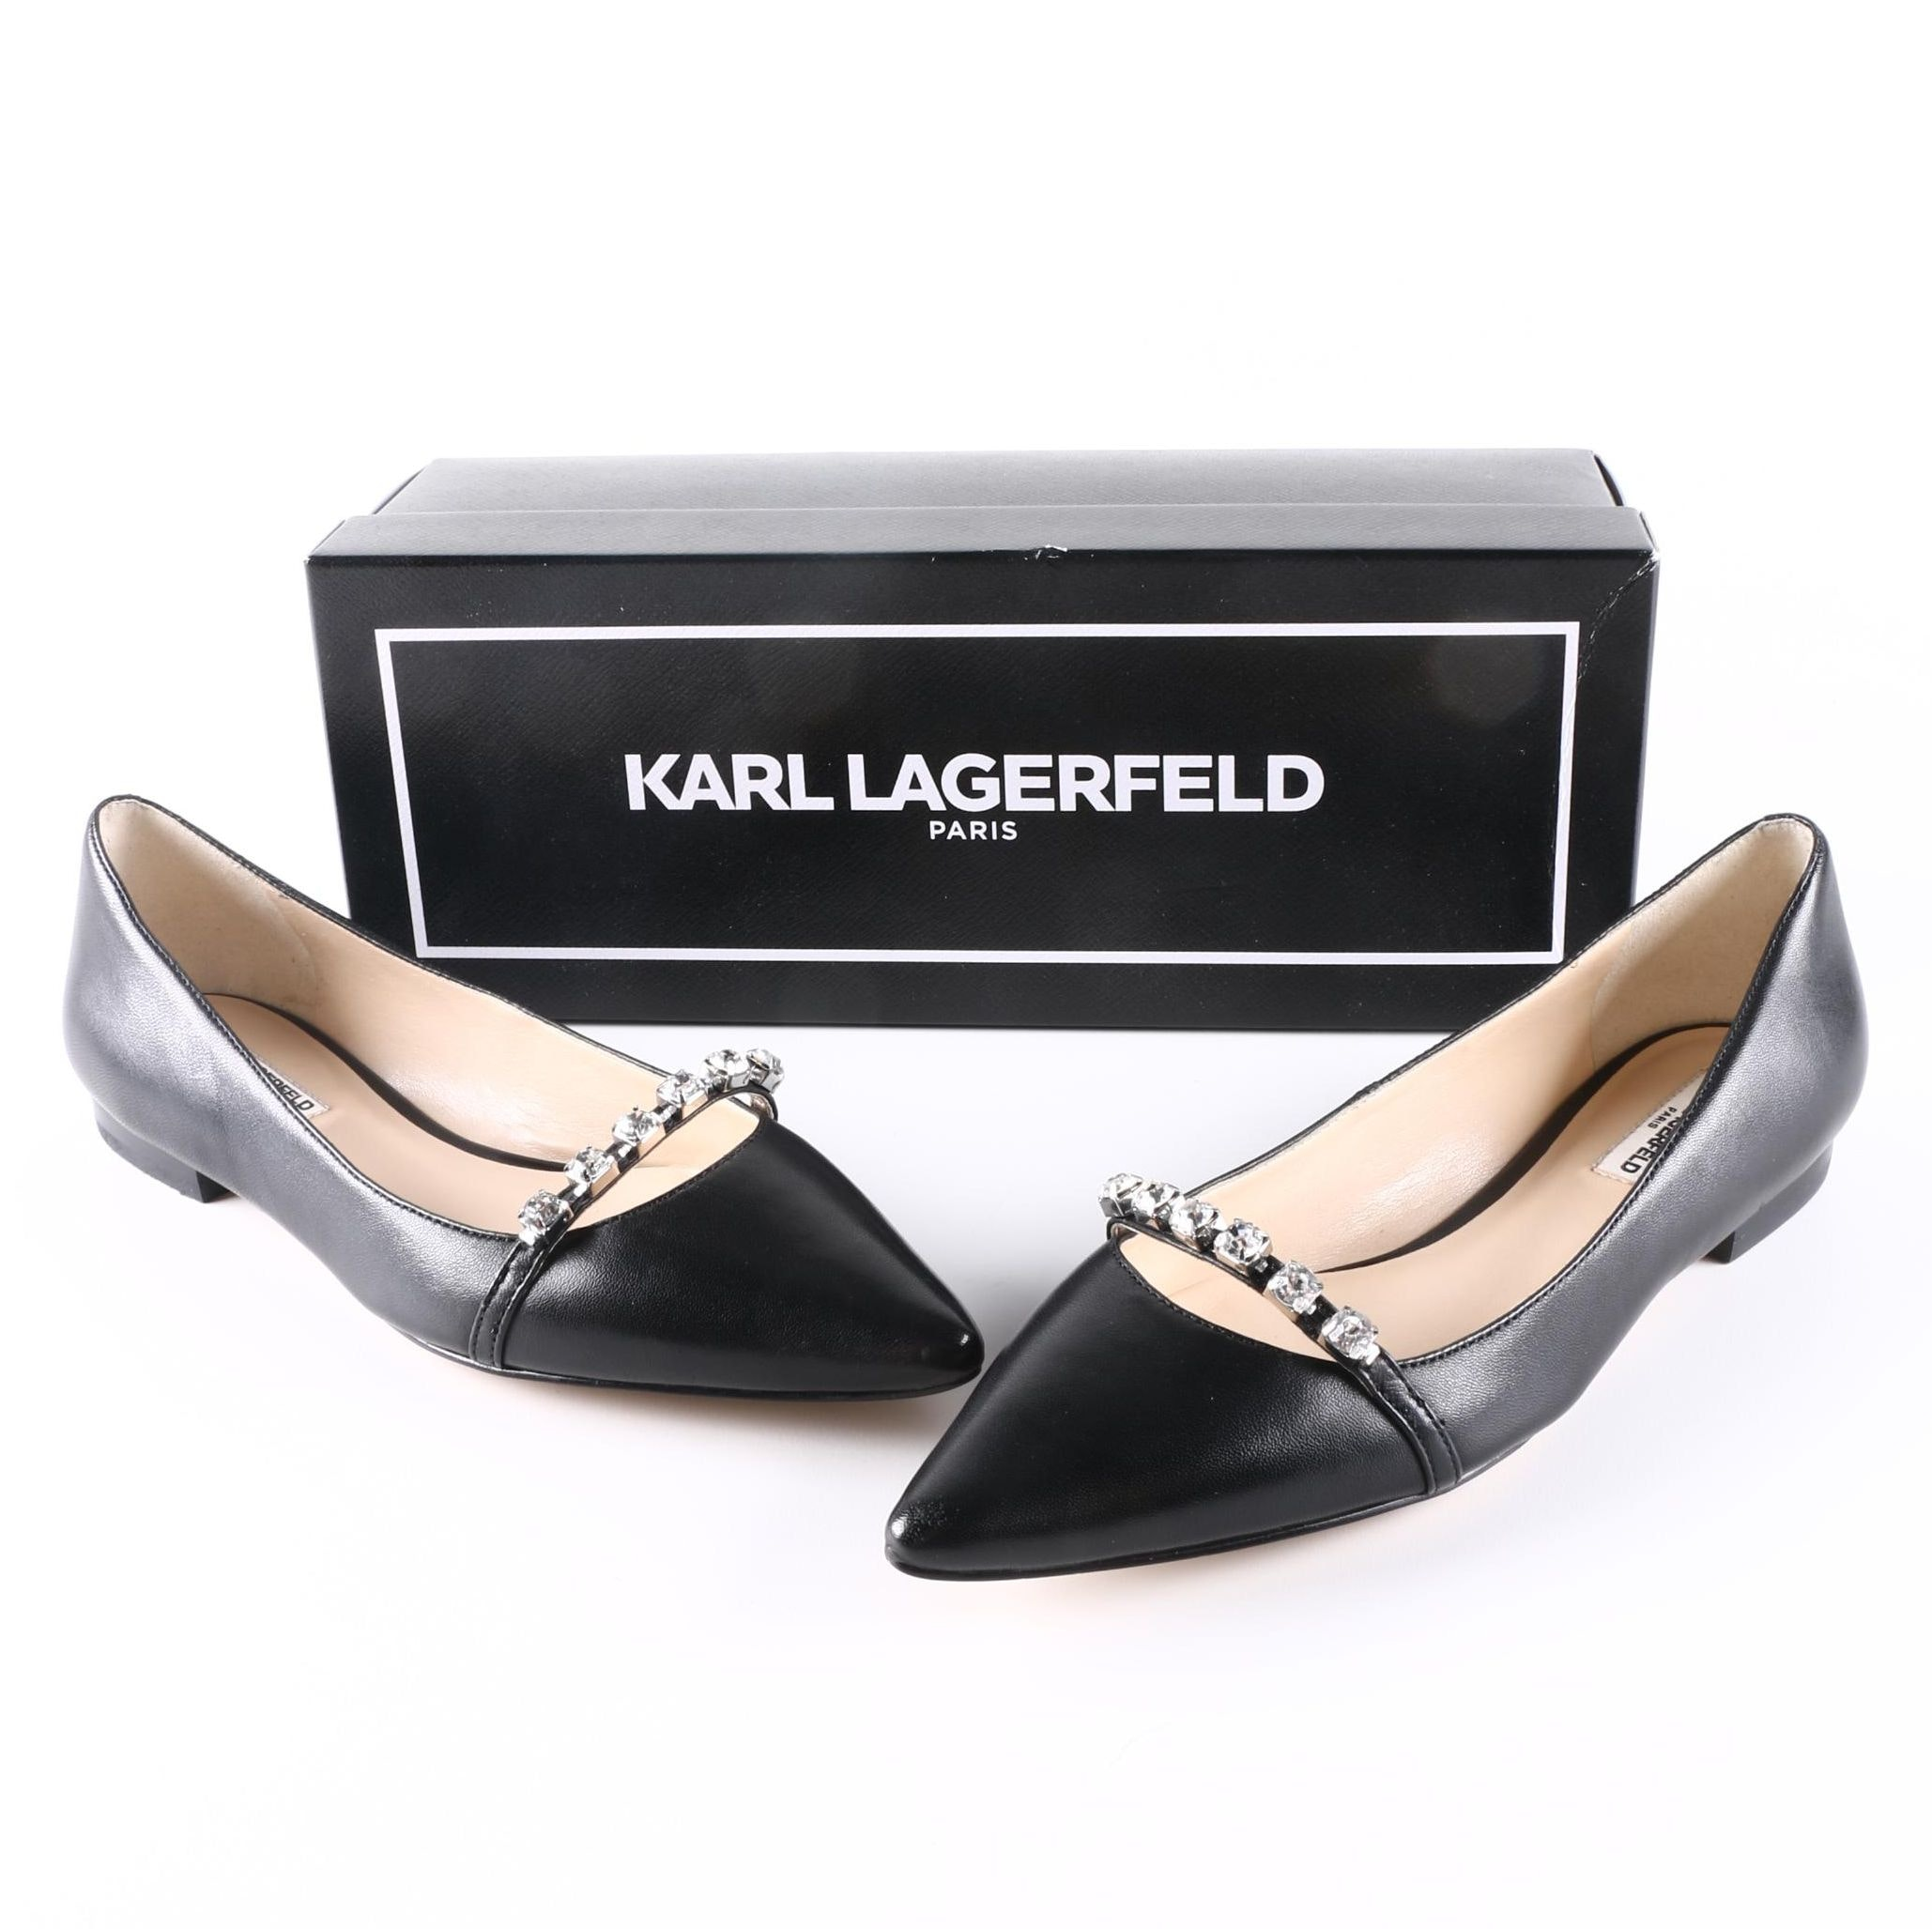 Karl Lagerfeld Leather Flats